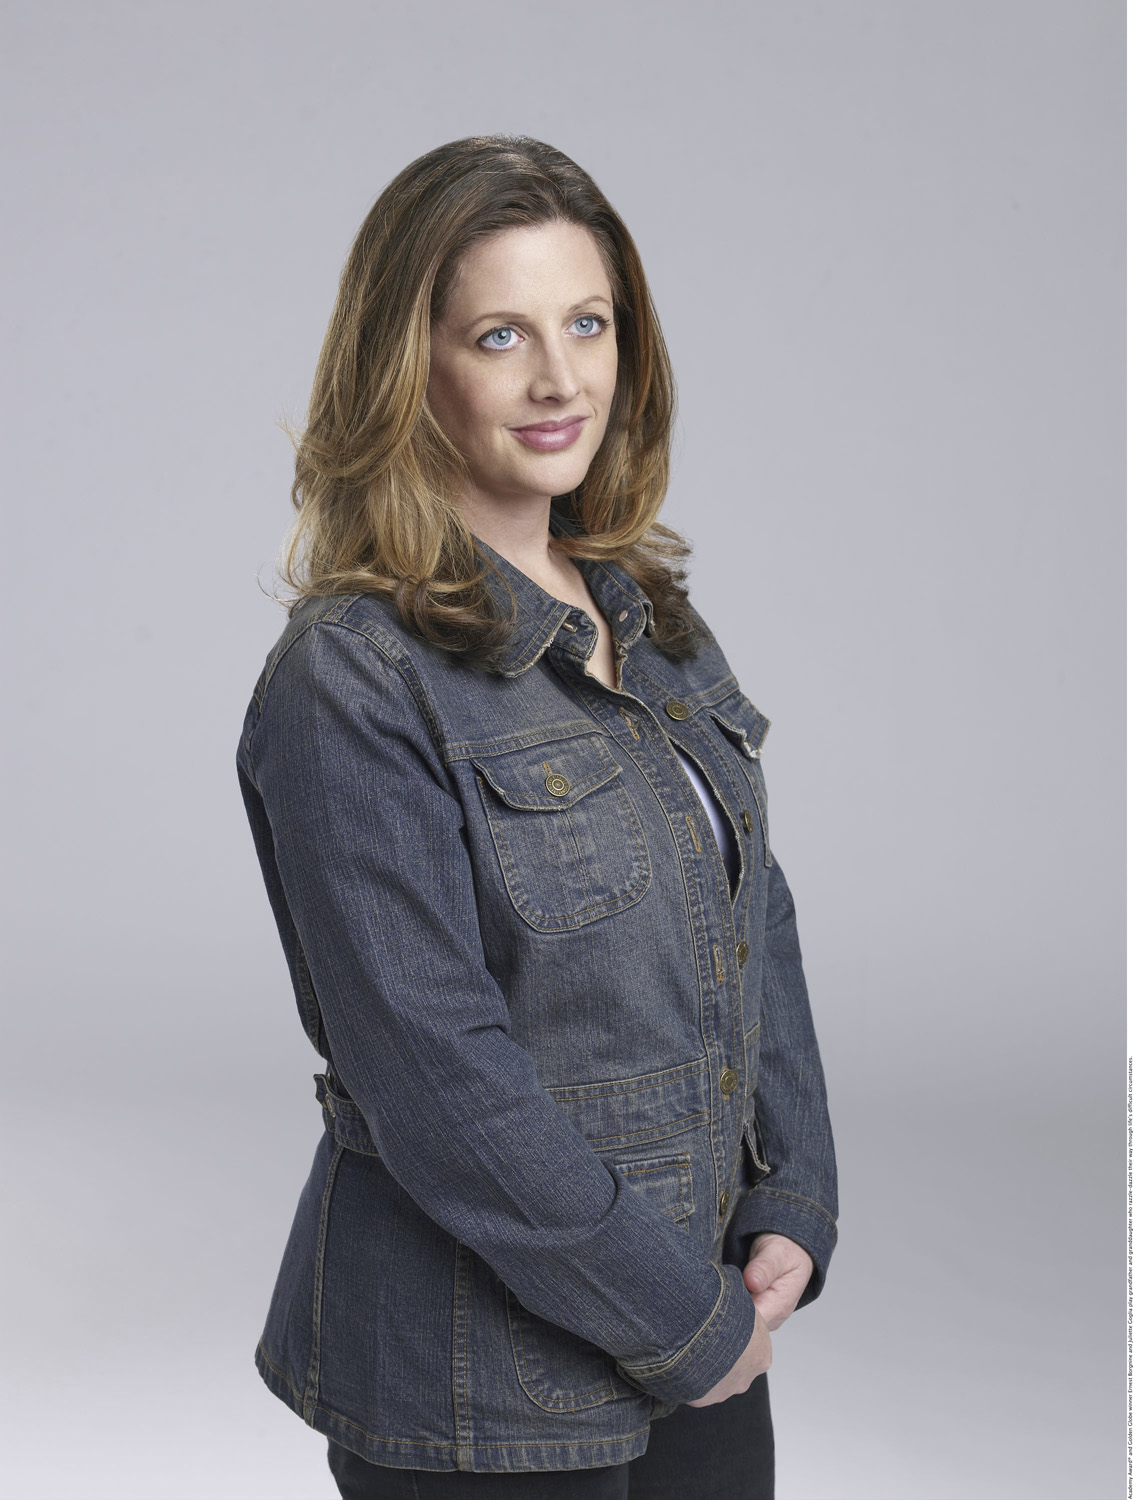 tracy nelson discography